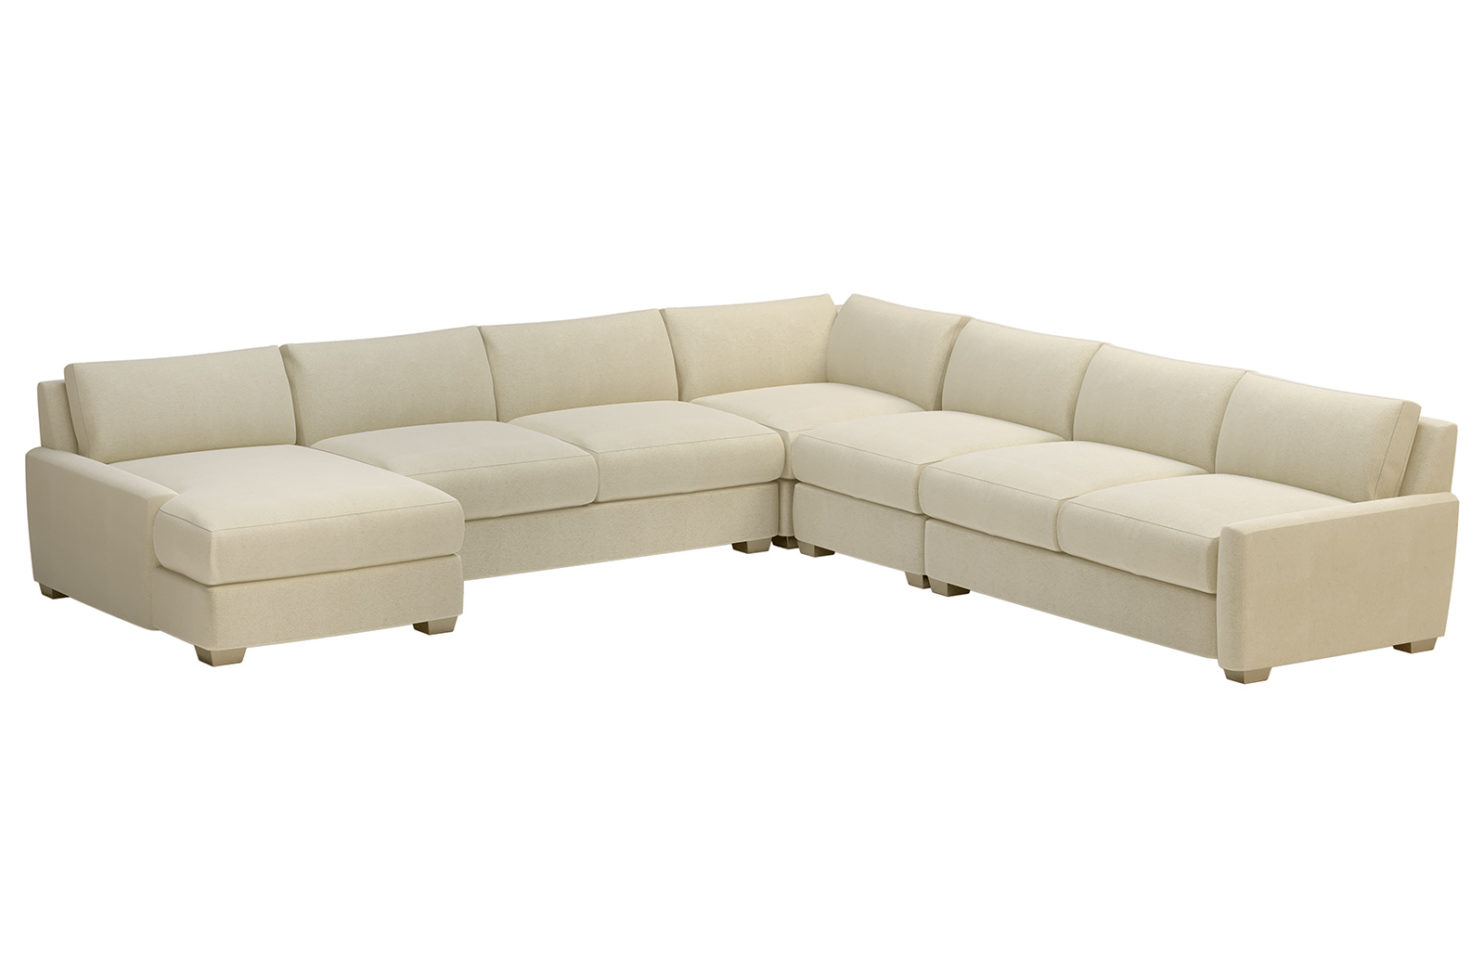 fizz imperial full left chaise 105FT004P2